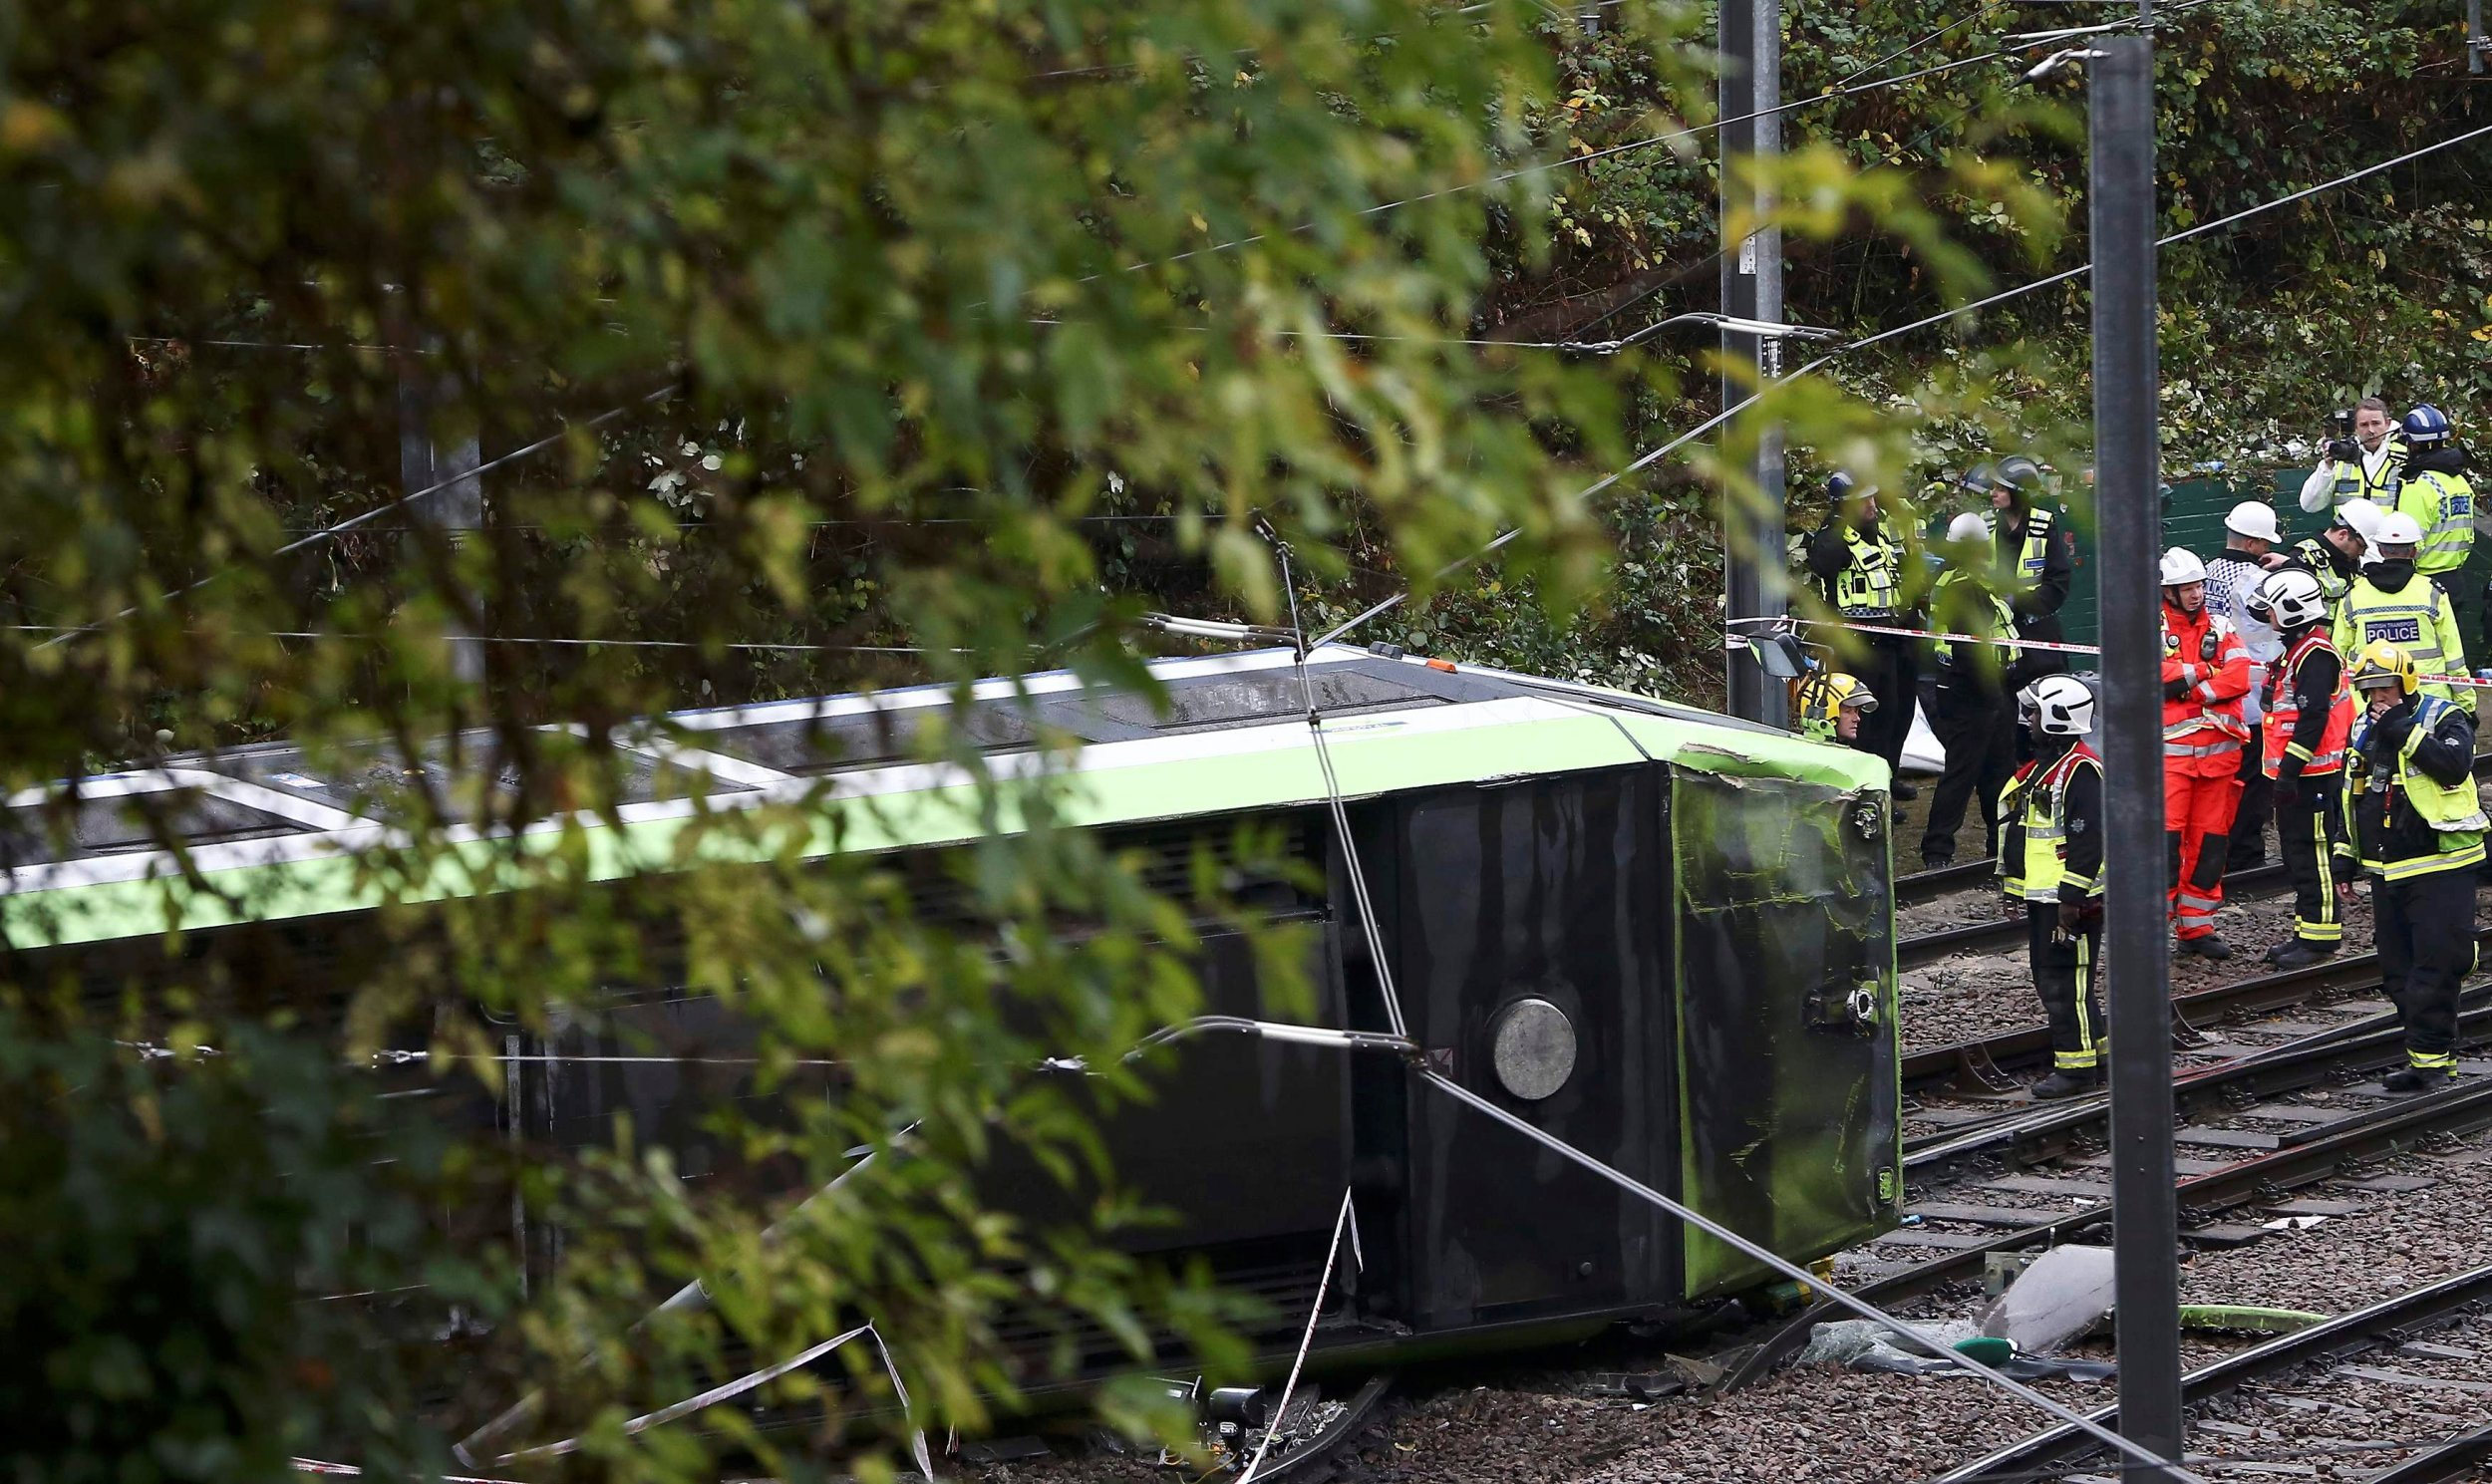 Tram Overturns in London